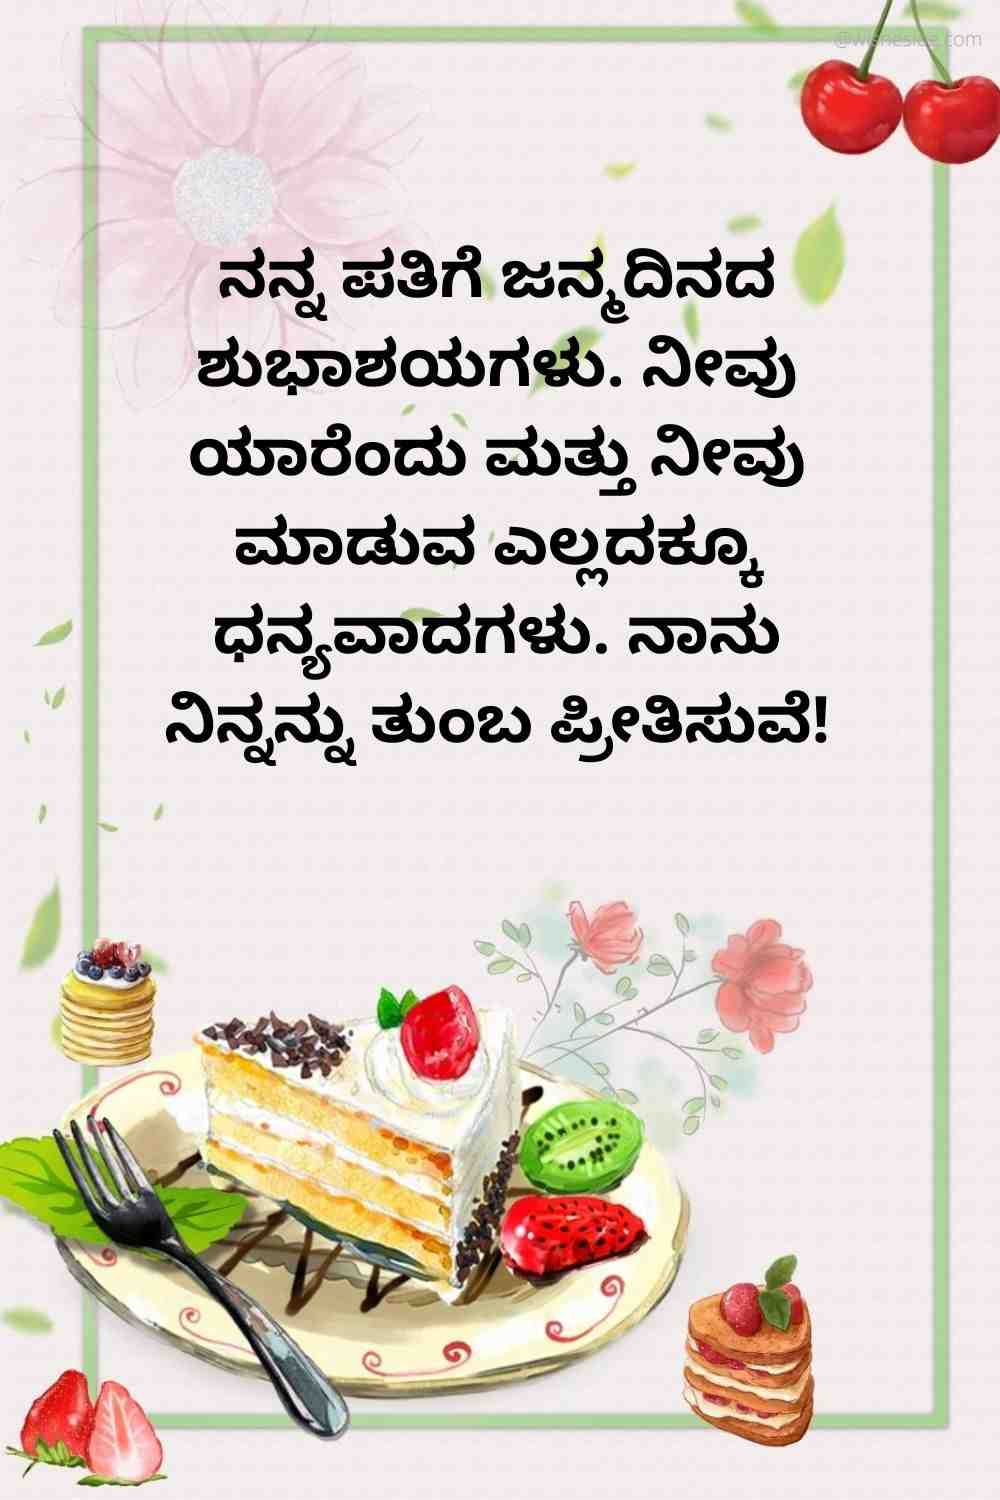 special birthday wishes for husband in kannada